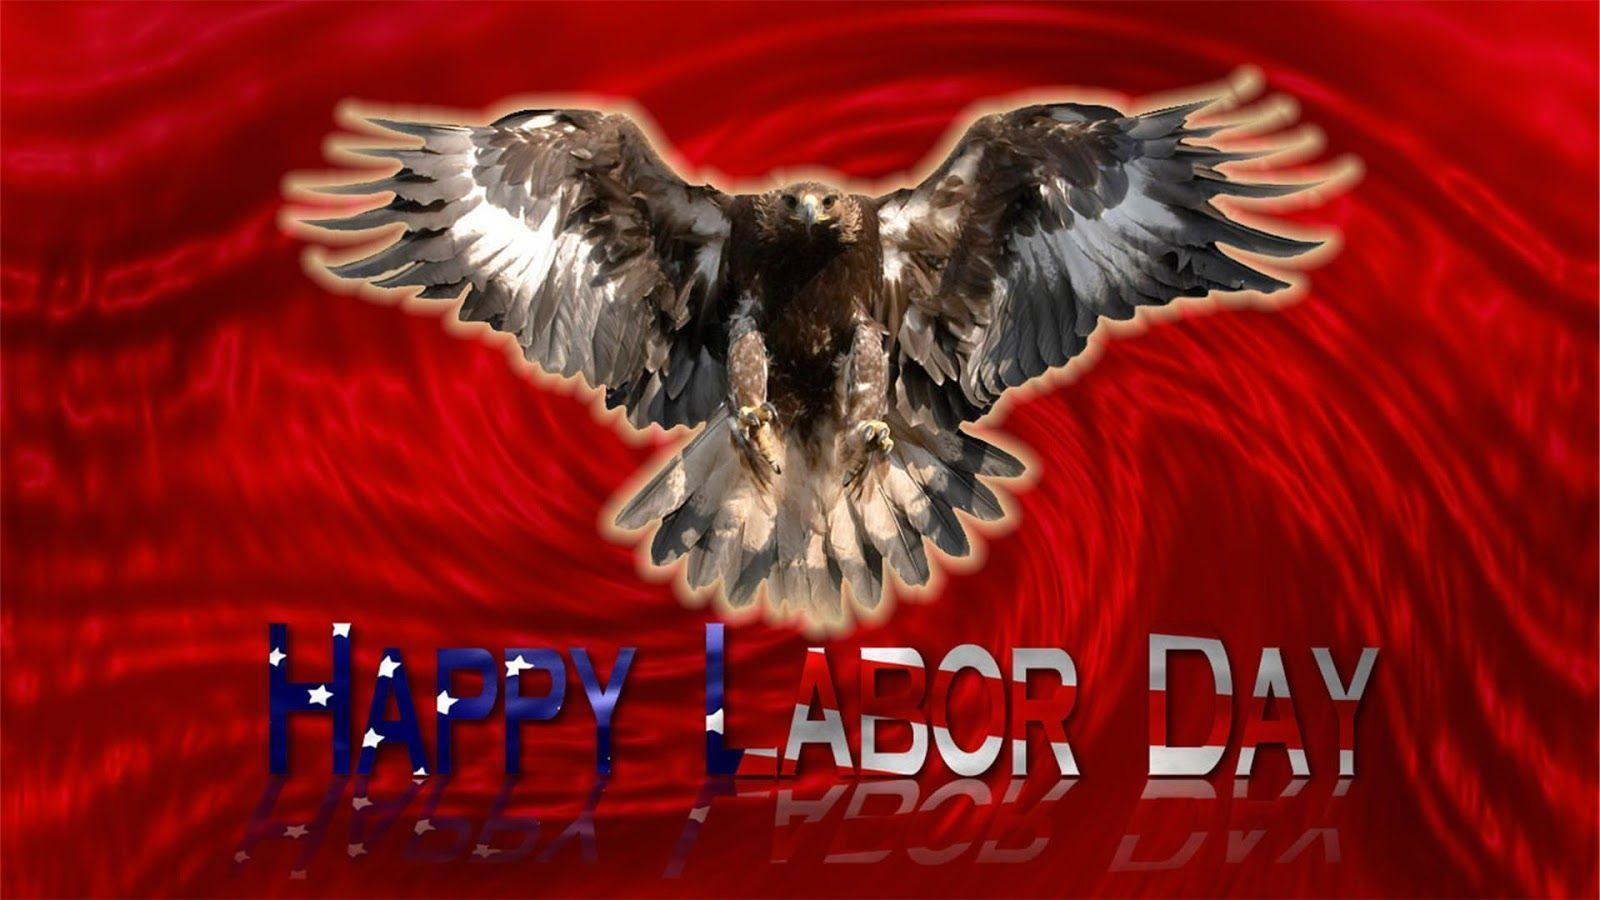 FULL HD*] Best Wallpapers of Happy Labor Day - Happy Labor Day HD ...